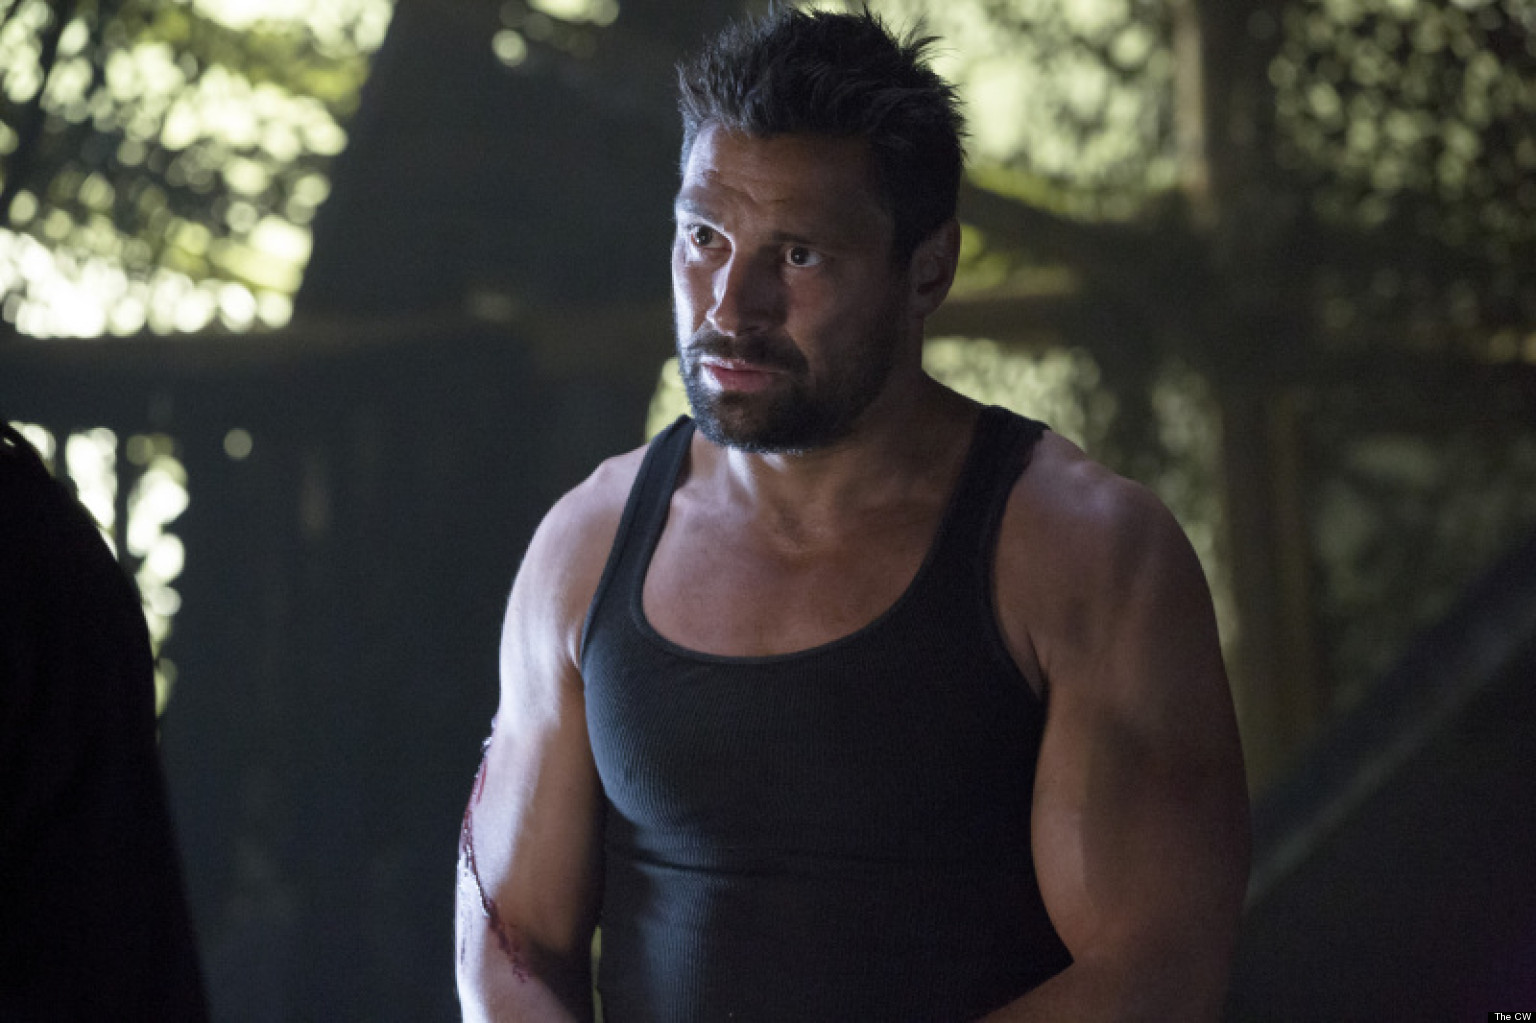 'Arrow': Manu Bennett Talks Playing Deathstroke And What's